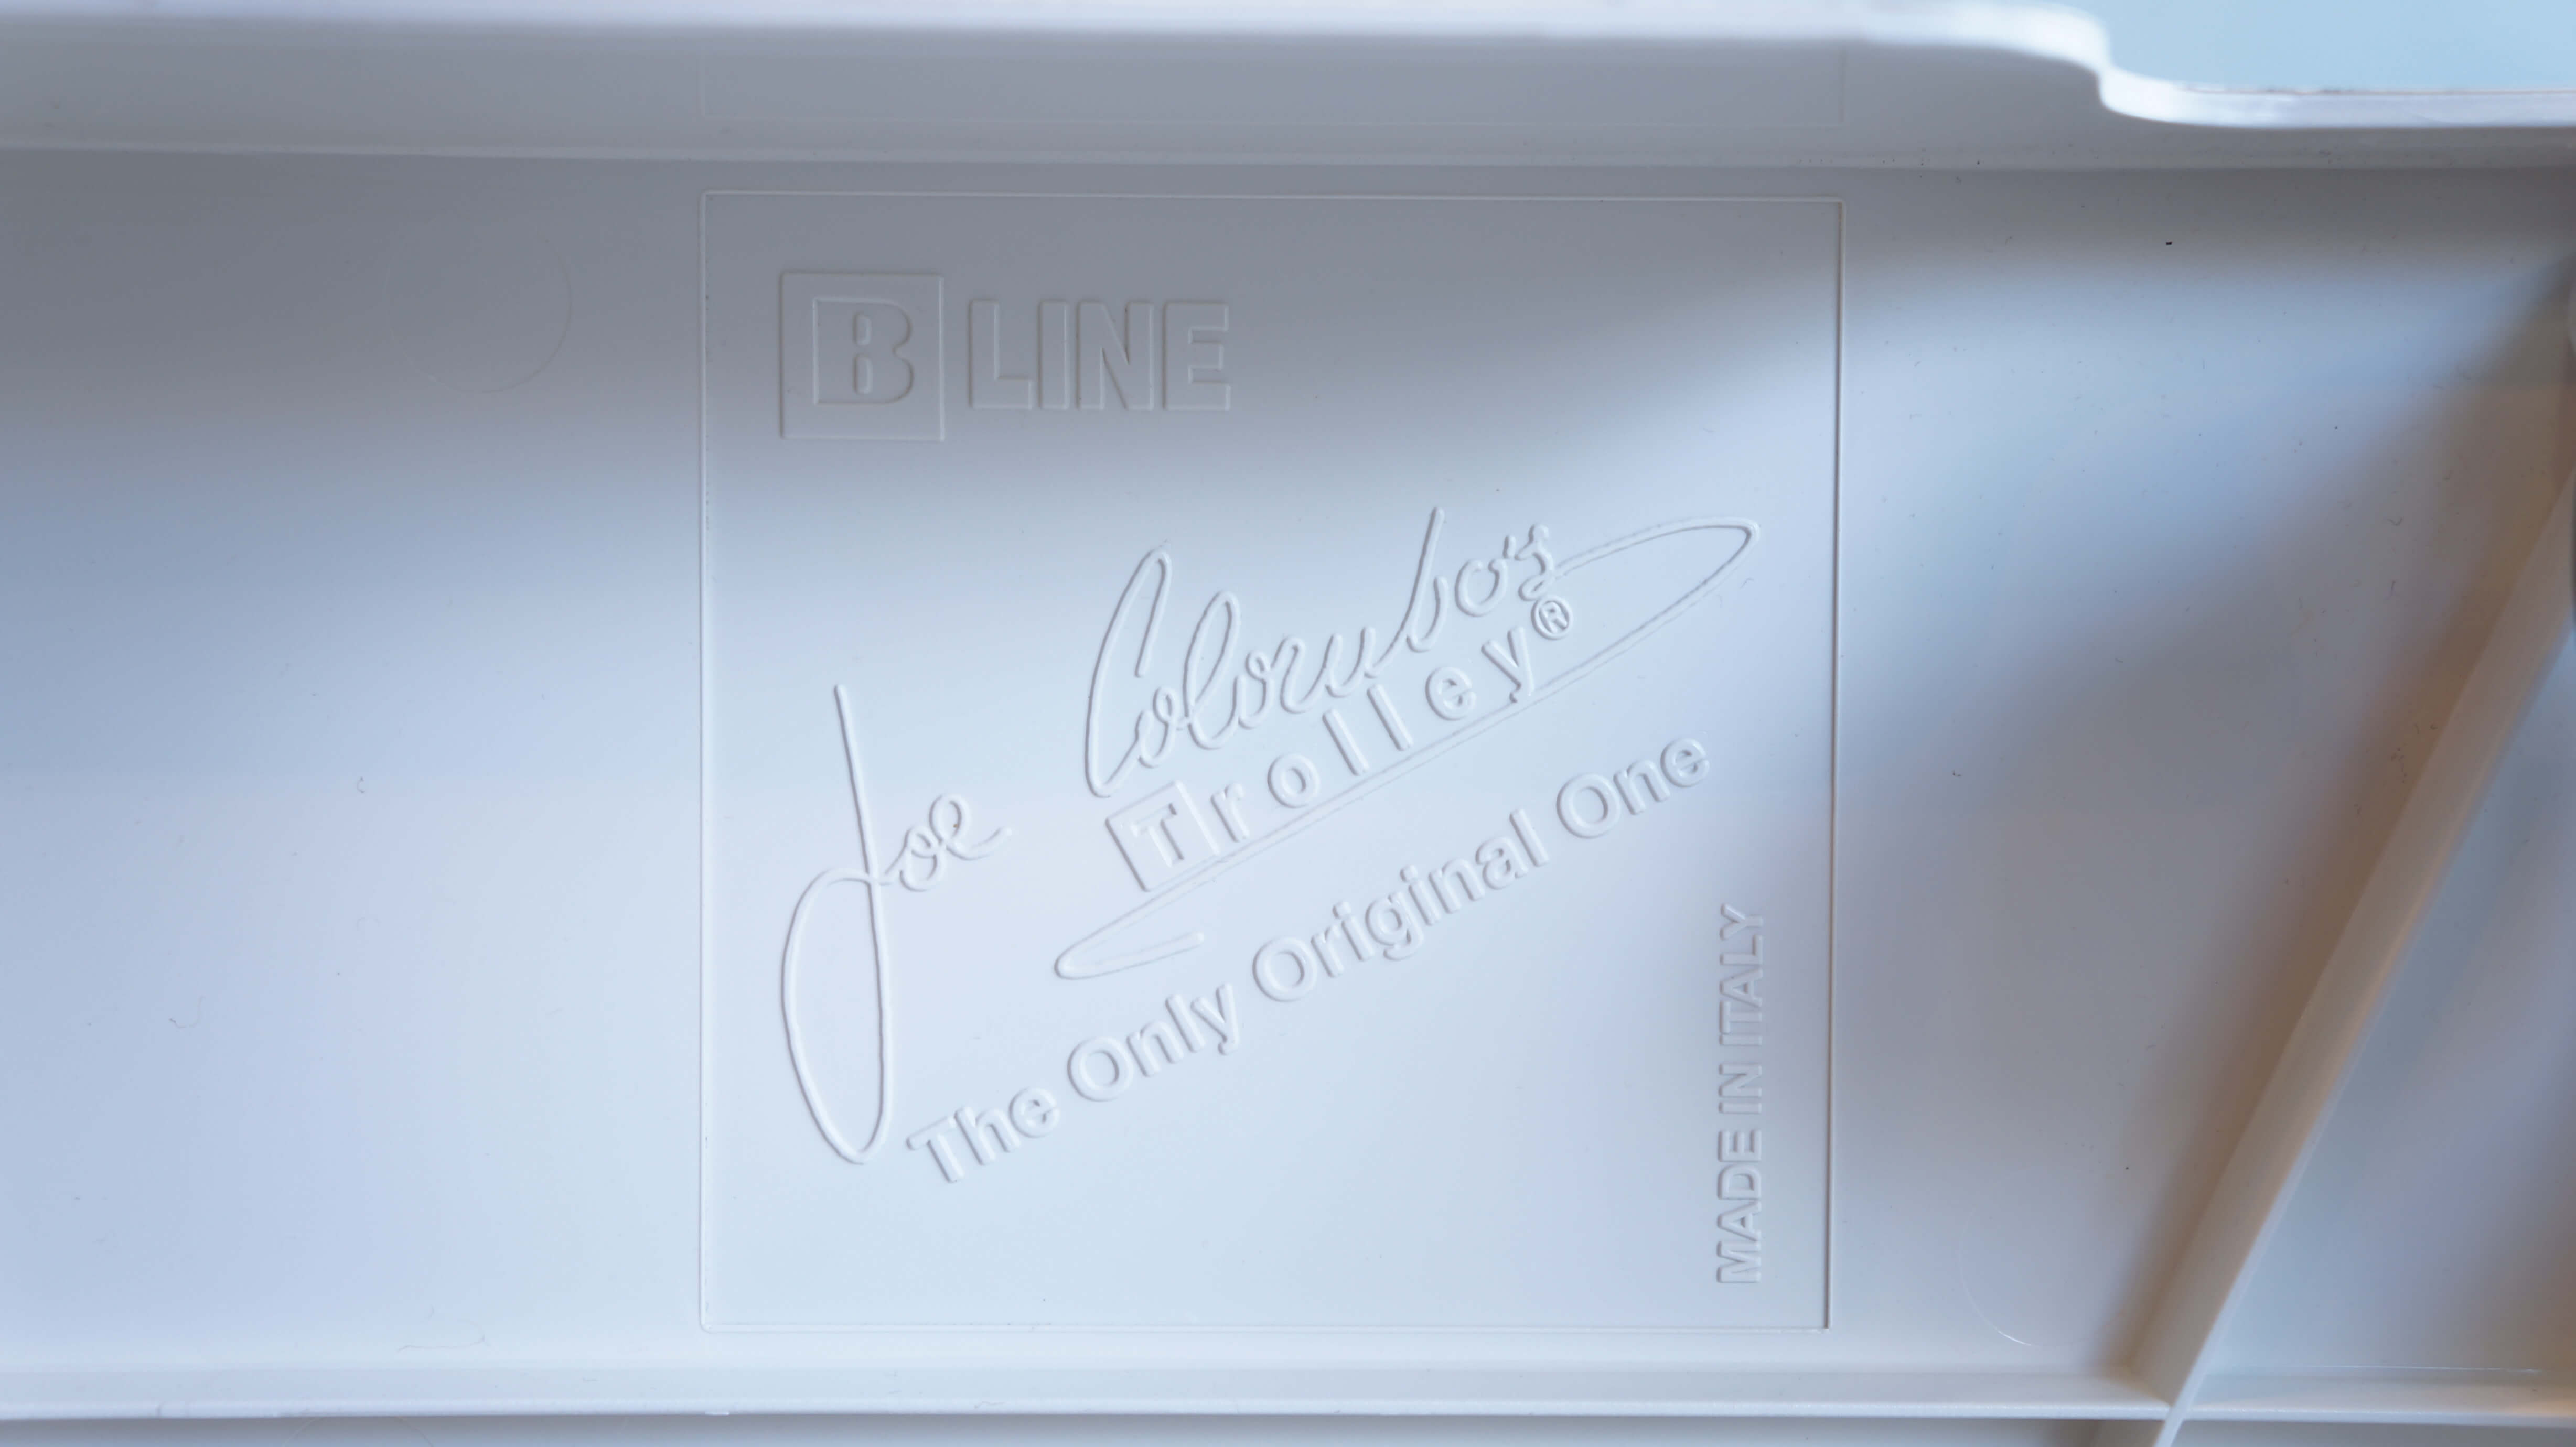 B-LINE BOBY WAGON White Color made in Italy Design by Joe Colombo / ビーライン ボビーワゴン イタリア製 ジョエ コロンボ デザイン ホワイト